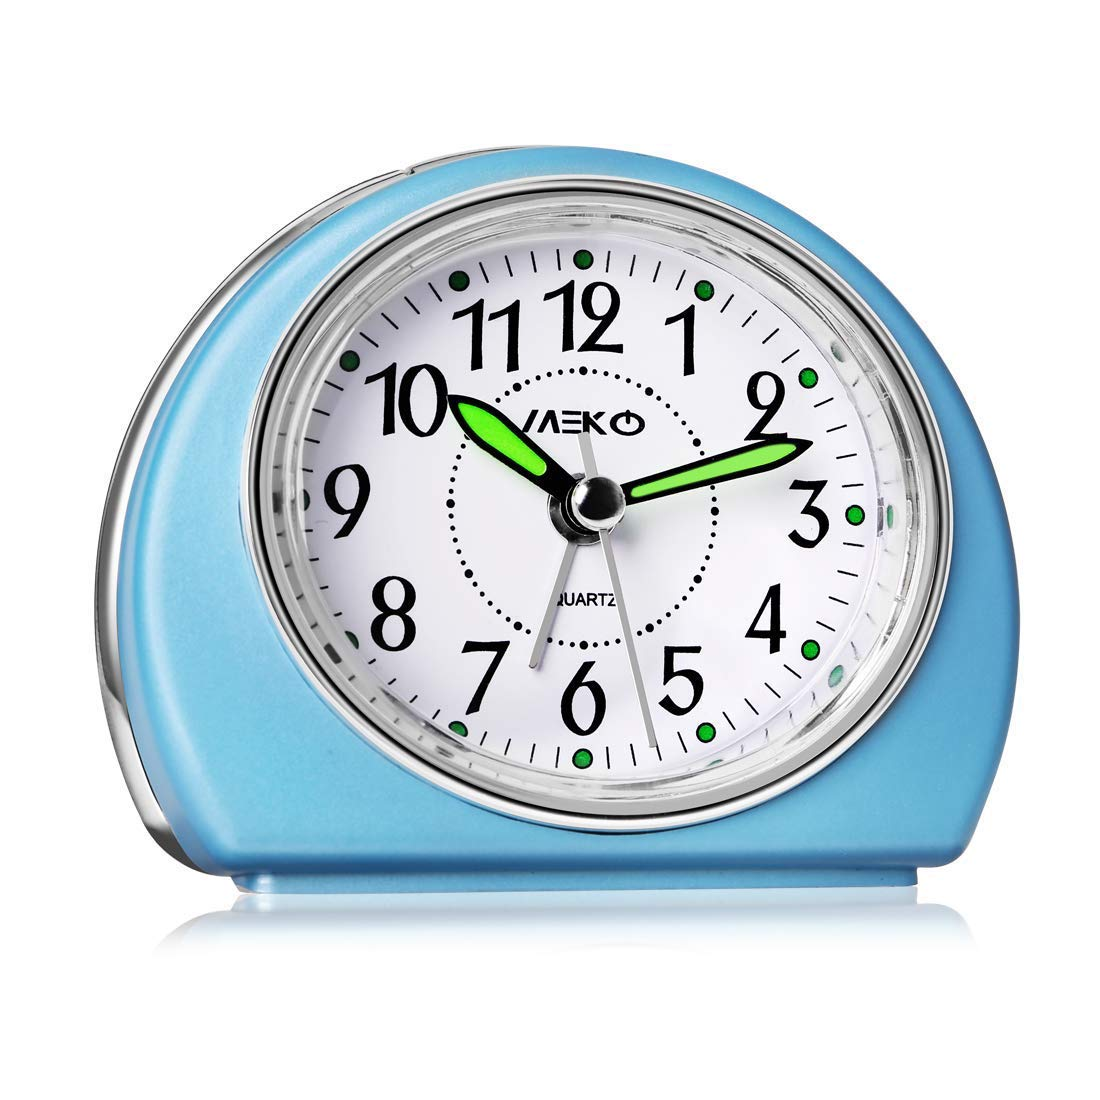 Alarm Clocks Non-Ticking for Bedrooms, MEKO Smart Tickless AA Battery Powered Travel Alarm Clock with Snooze and Nightlight, Silent No Ticking Bedside Clock(Blue)